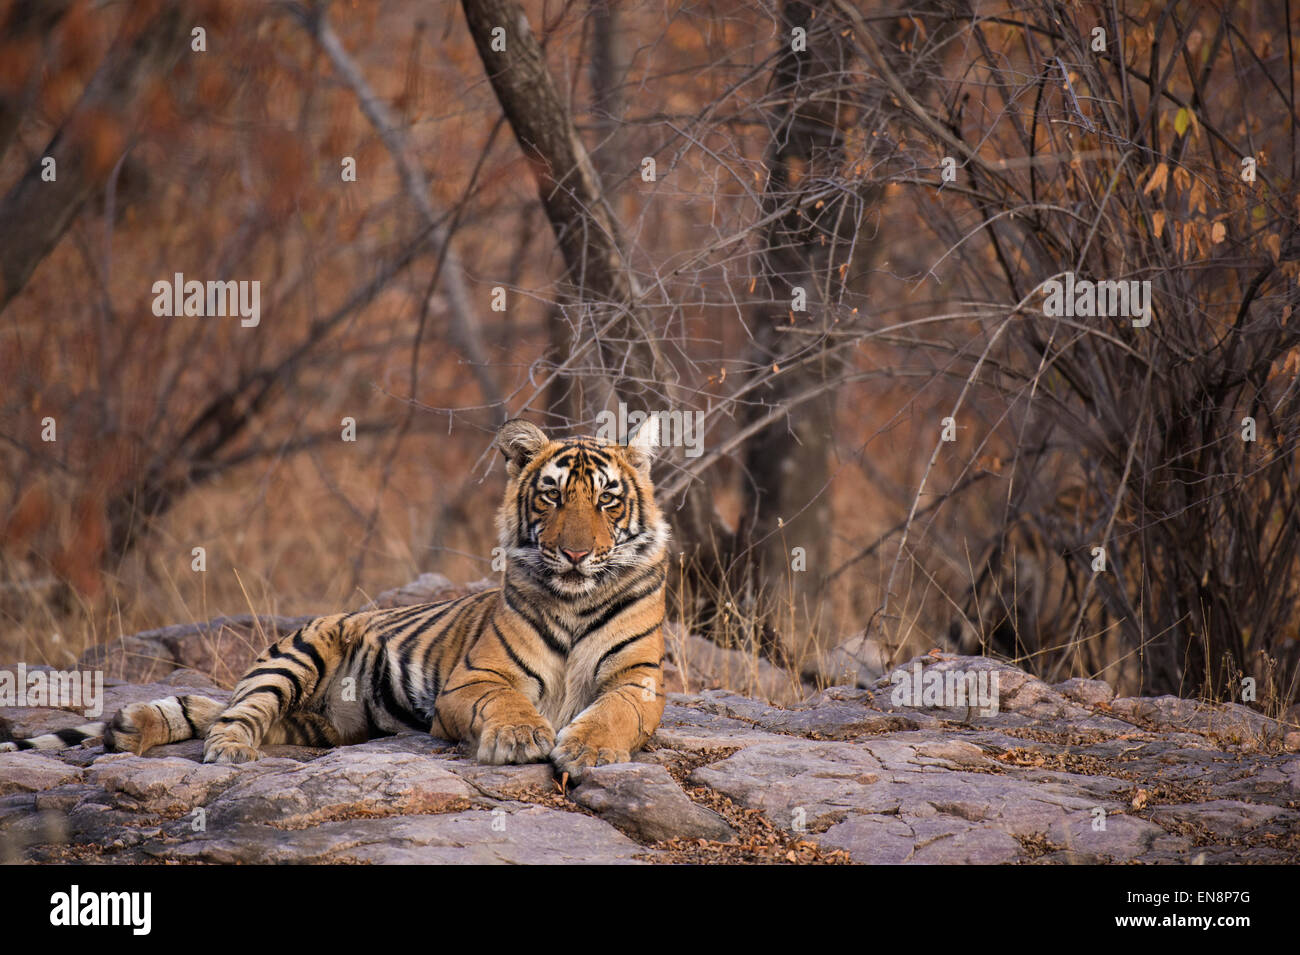 Sub adult tiger sitting on rocky ground in Ranthambhore national park in India - Stock Image